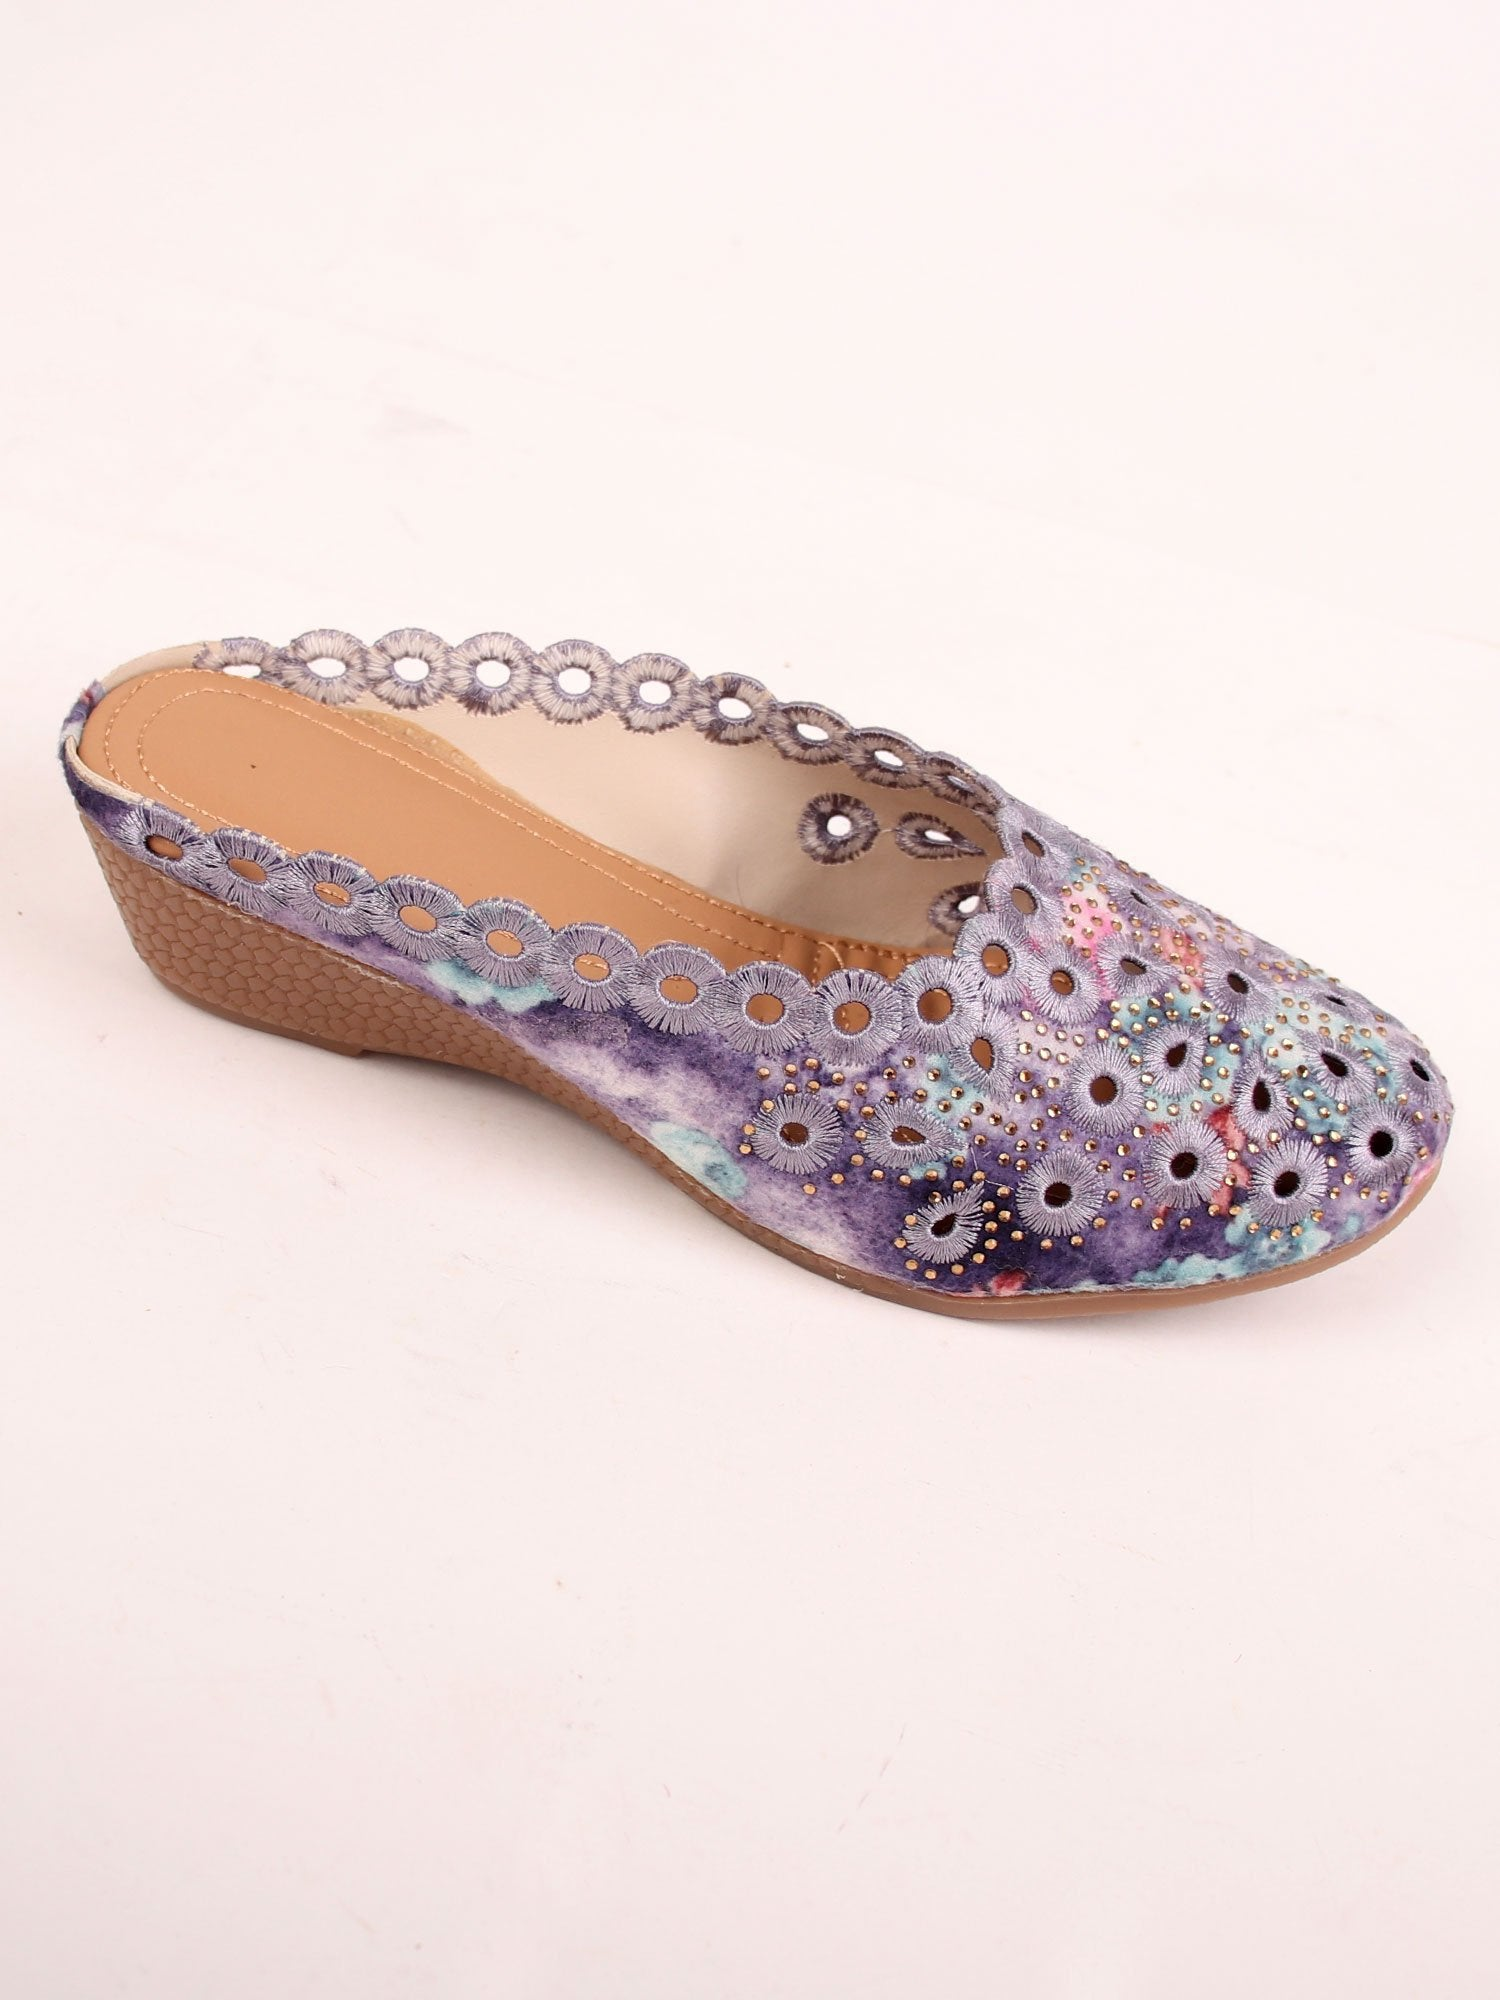 EMBROIDERED BEAUTY SANDALS IN PURPLE